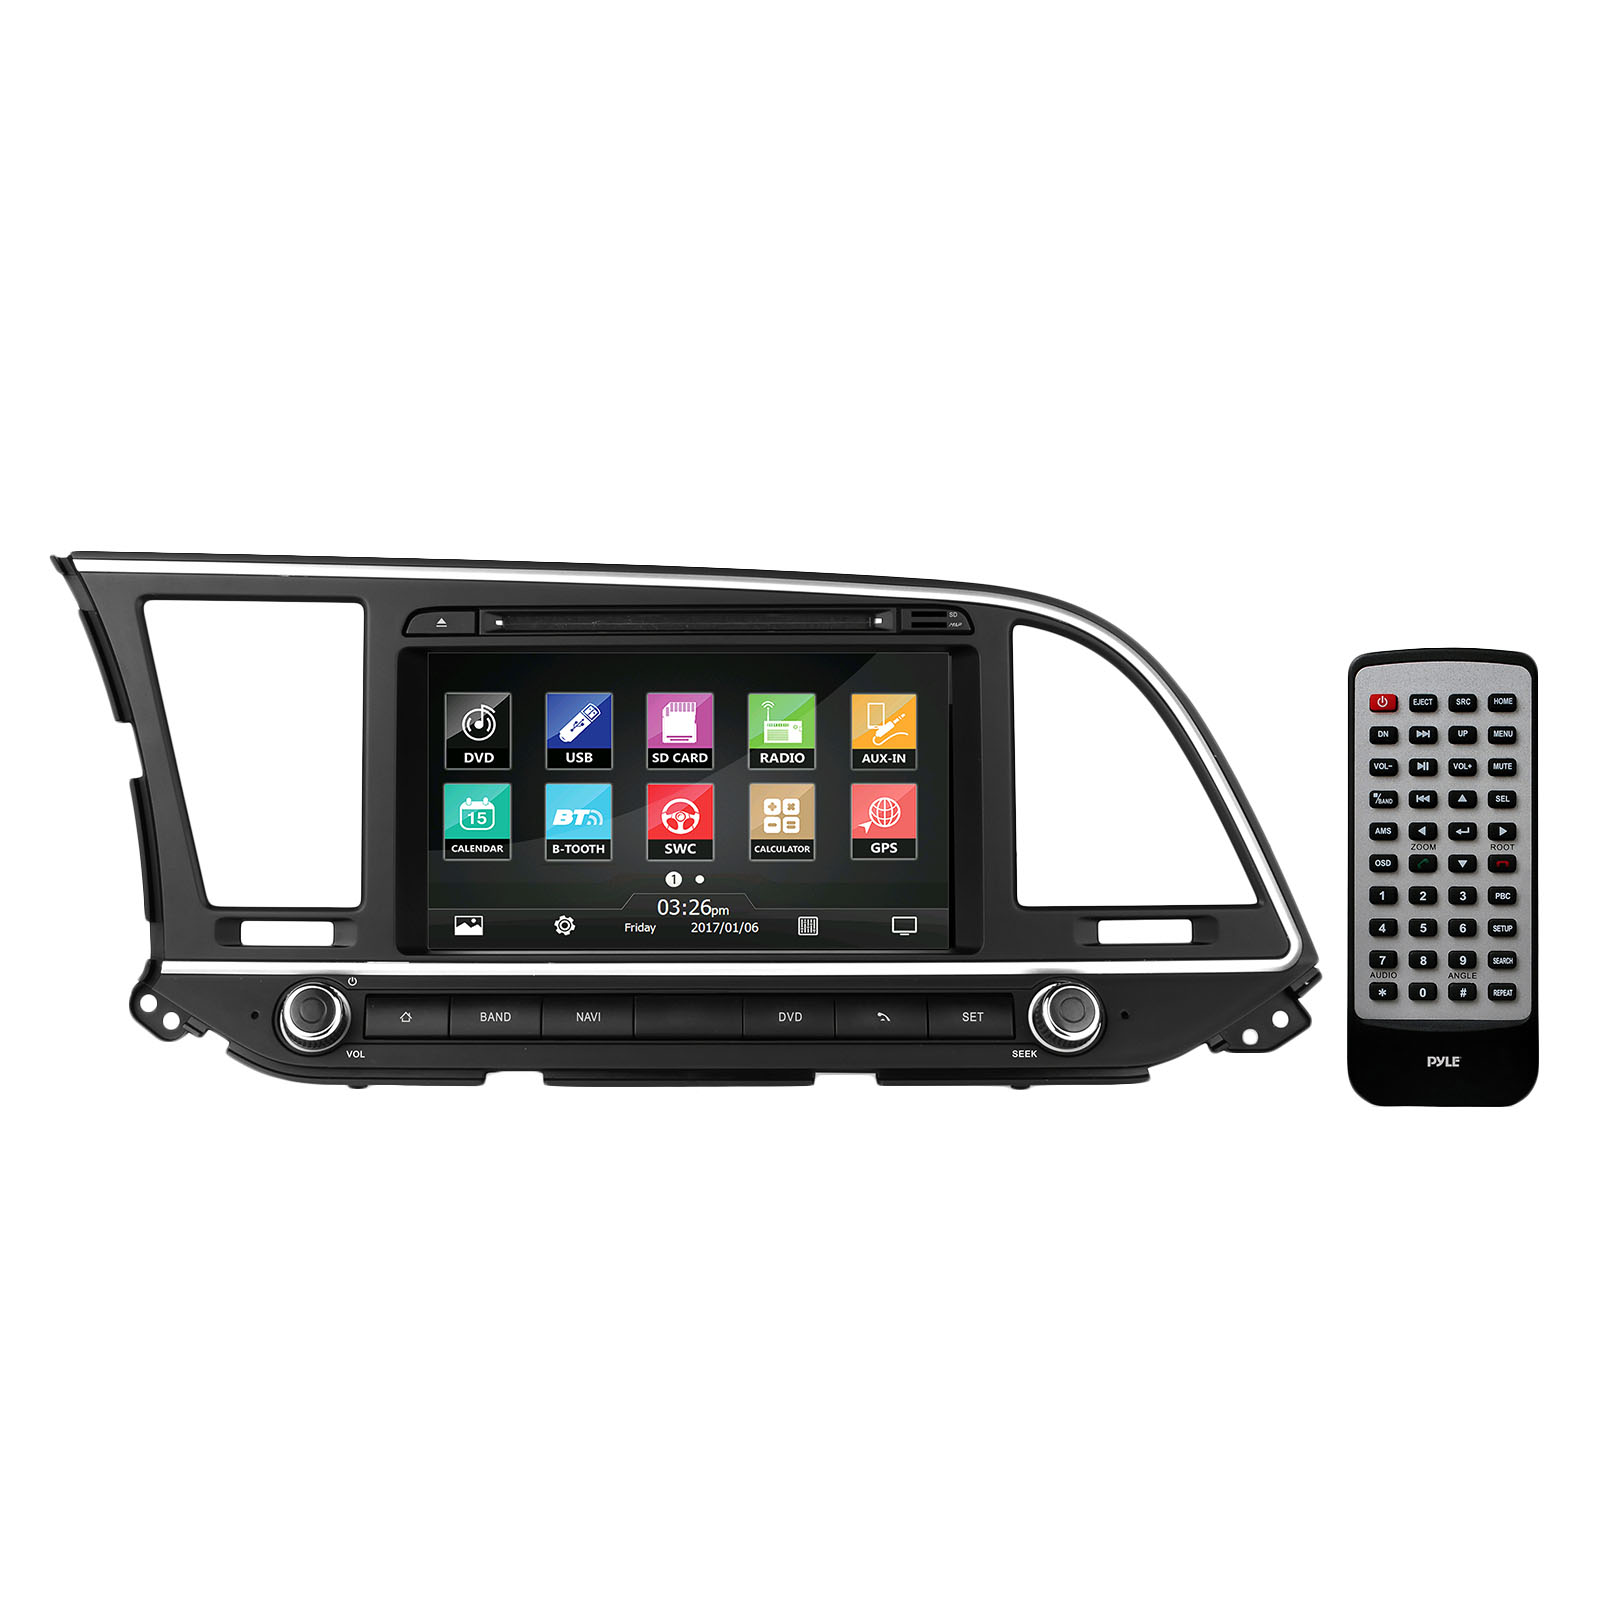 2016 Hyundai Elantra Factory OEM Replacement Stereo Receiver, Plug-and-Play Direct Fitment Radio Headunit by Pyle